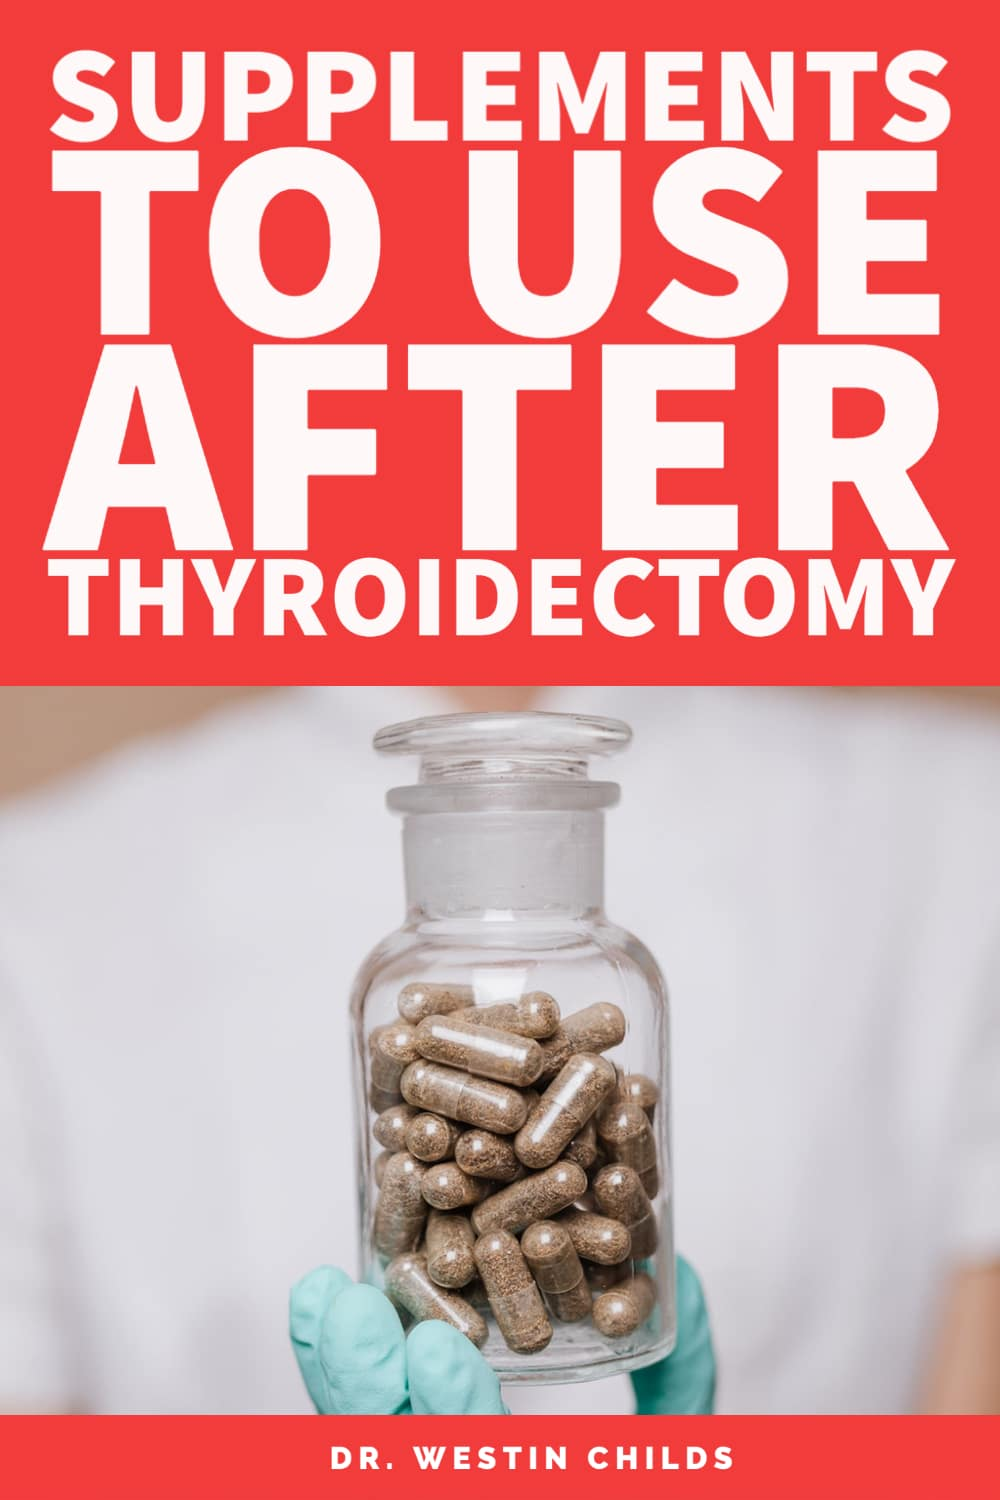 use these supplements after thyroidectomy